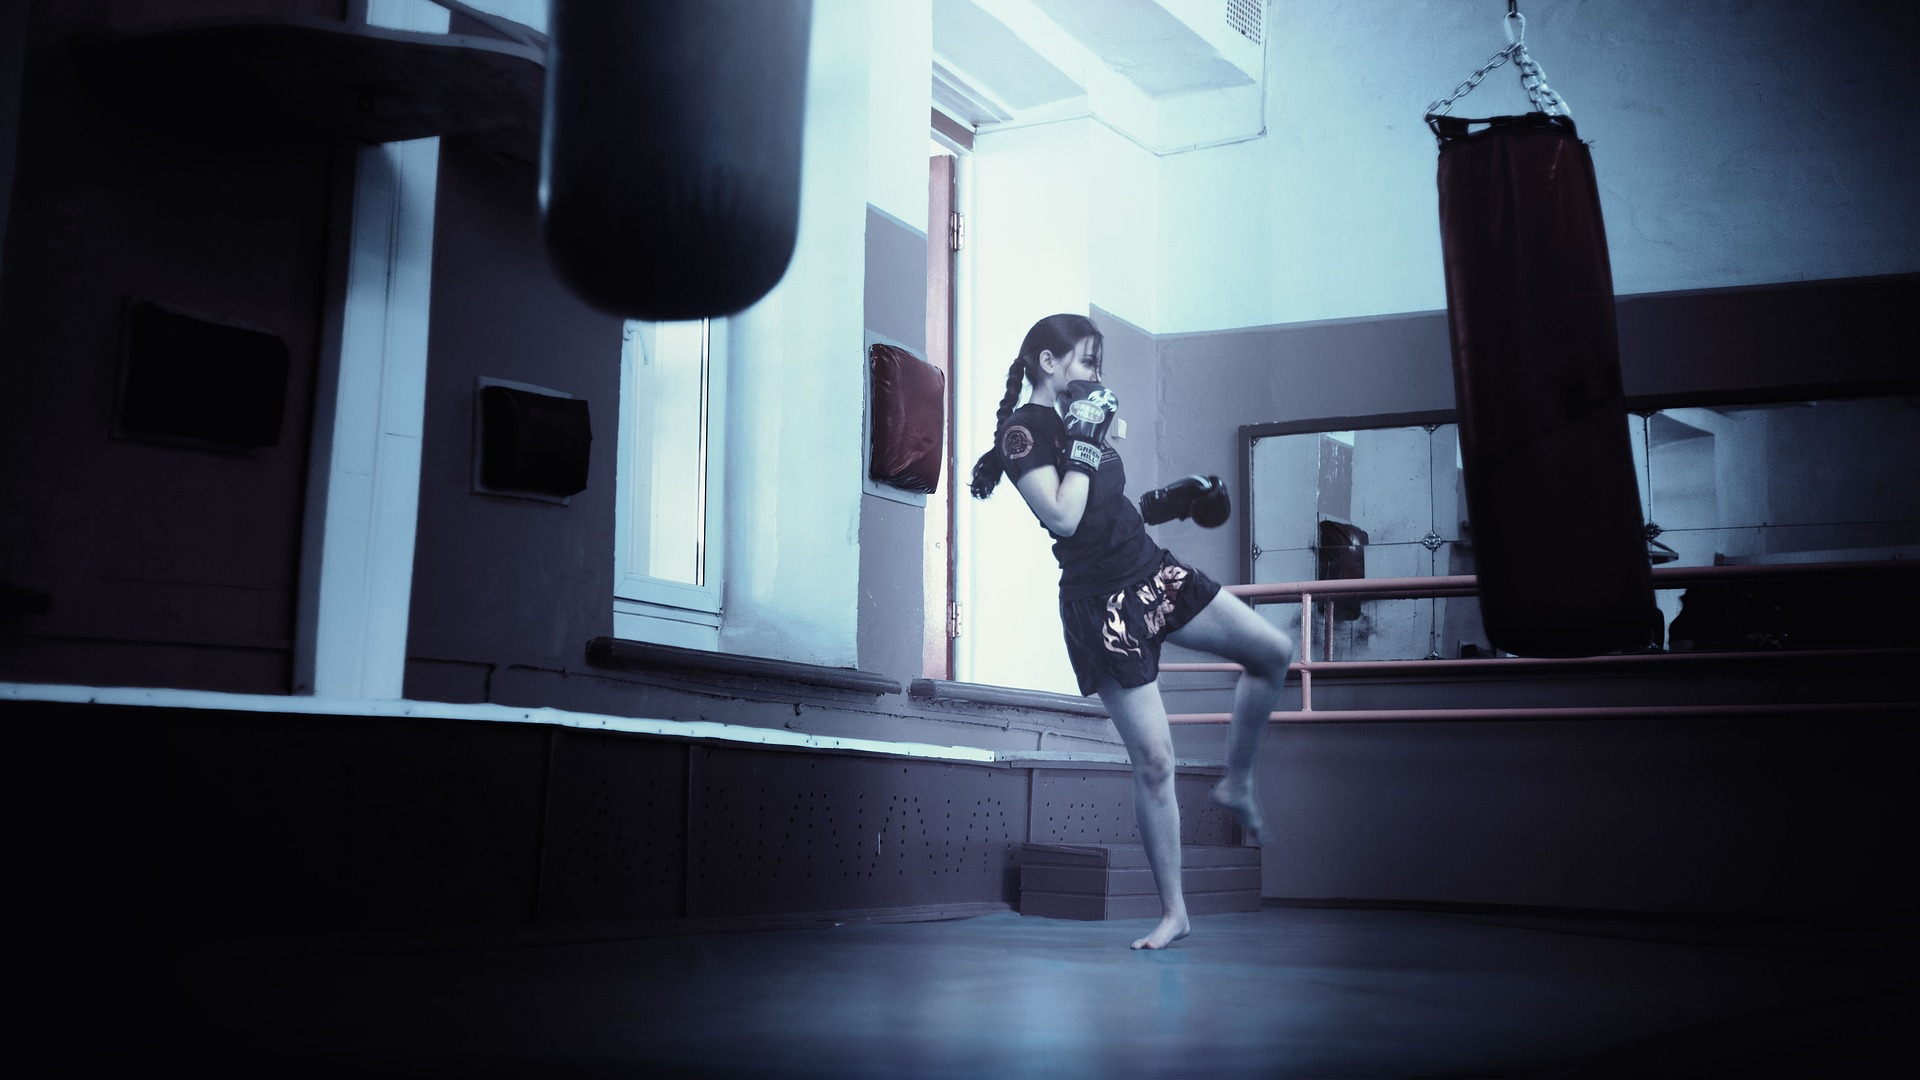 Watch Cardio Kickboxing Videos